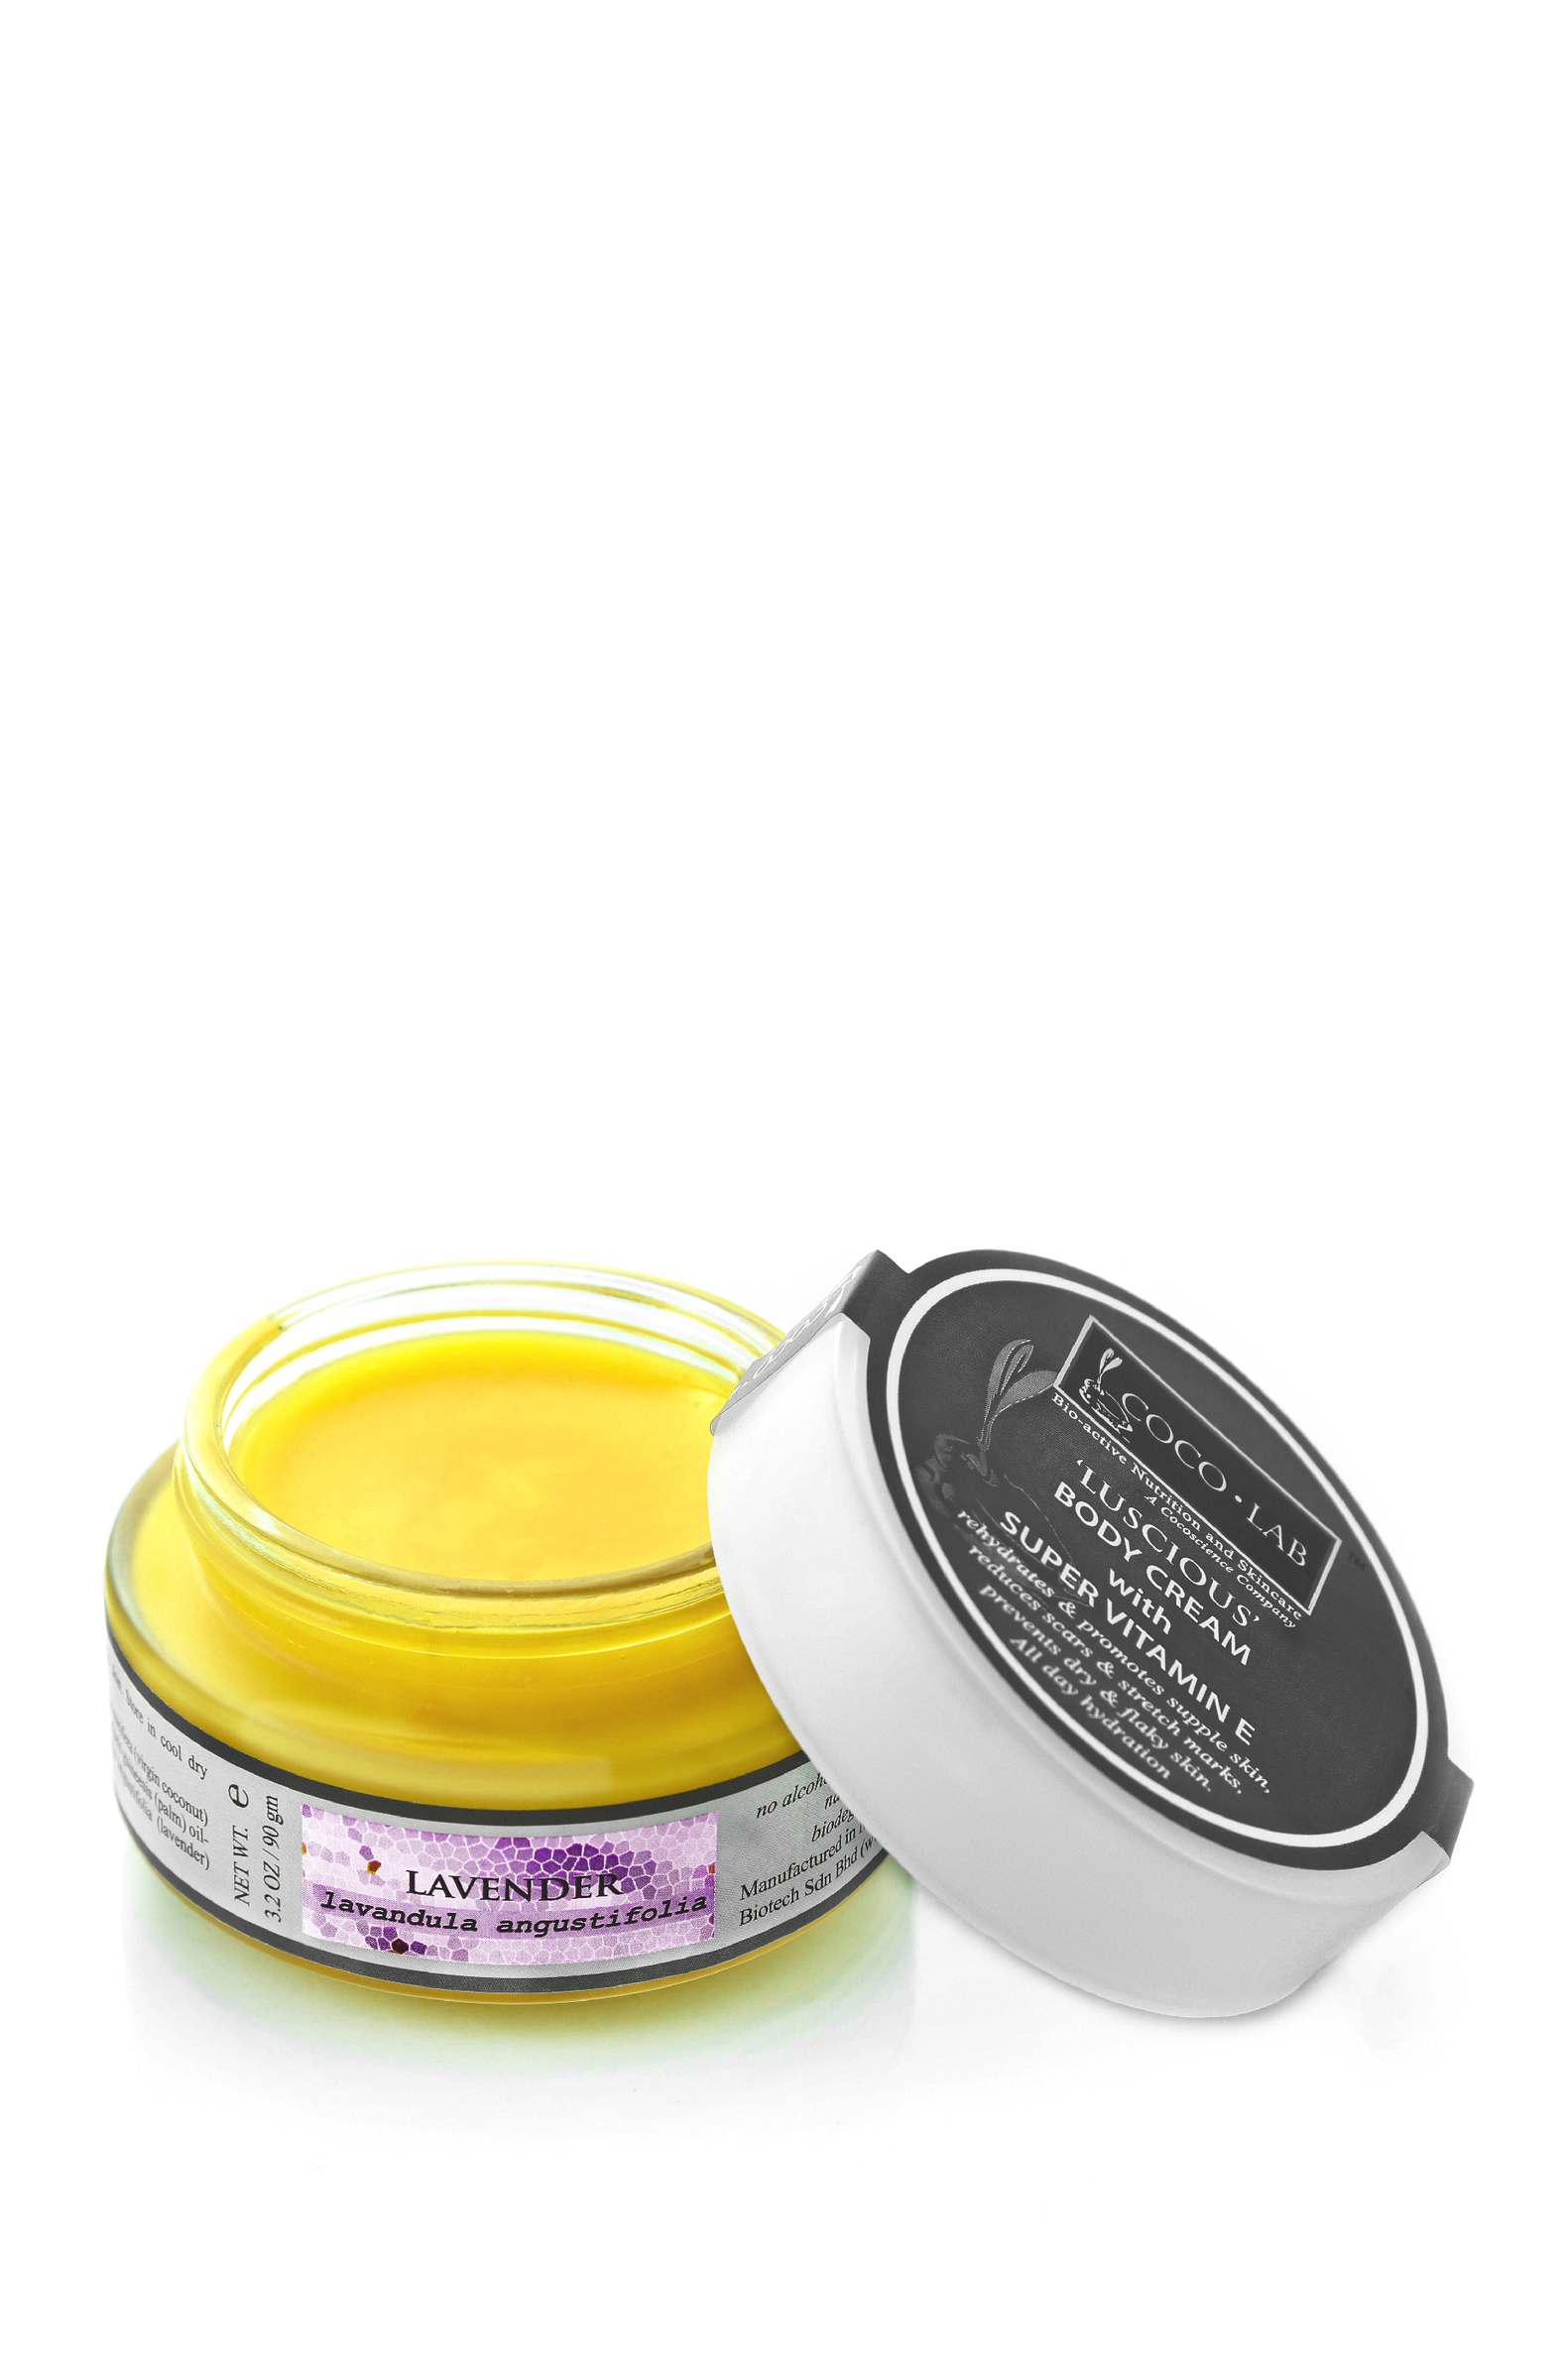 BODY CREAM LAVENDER.jpg